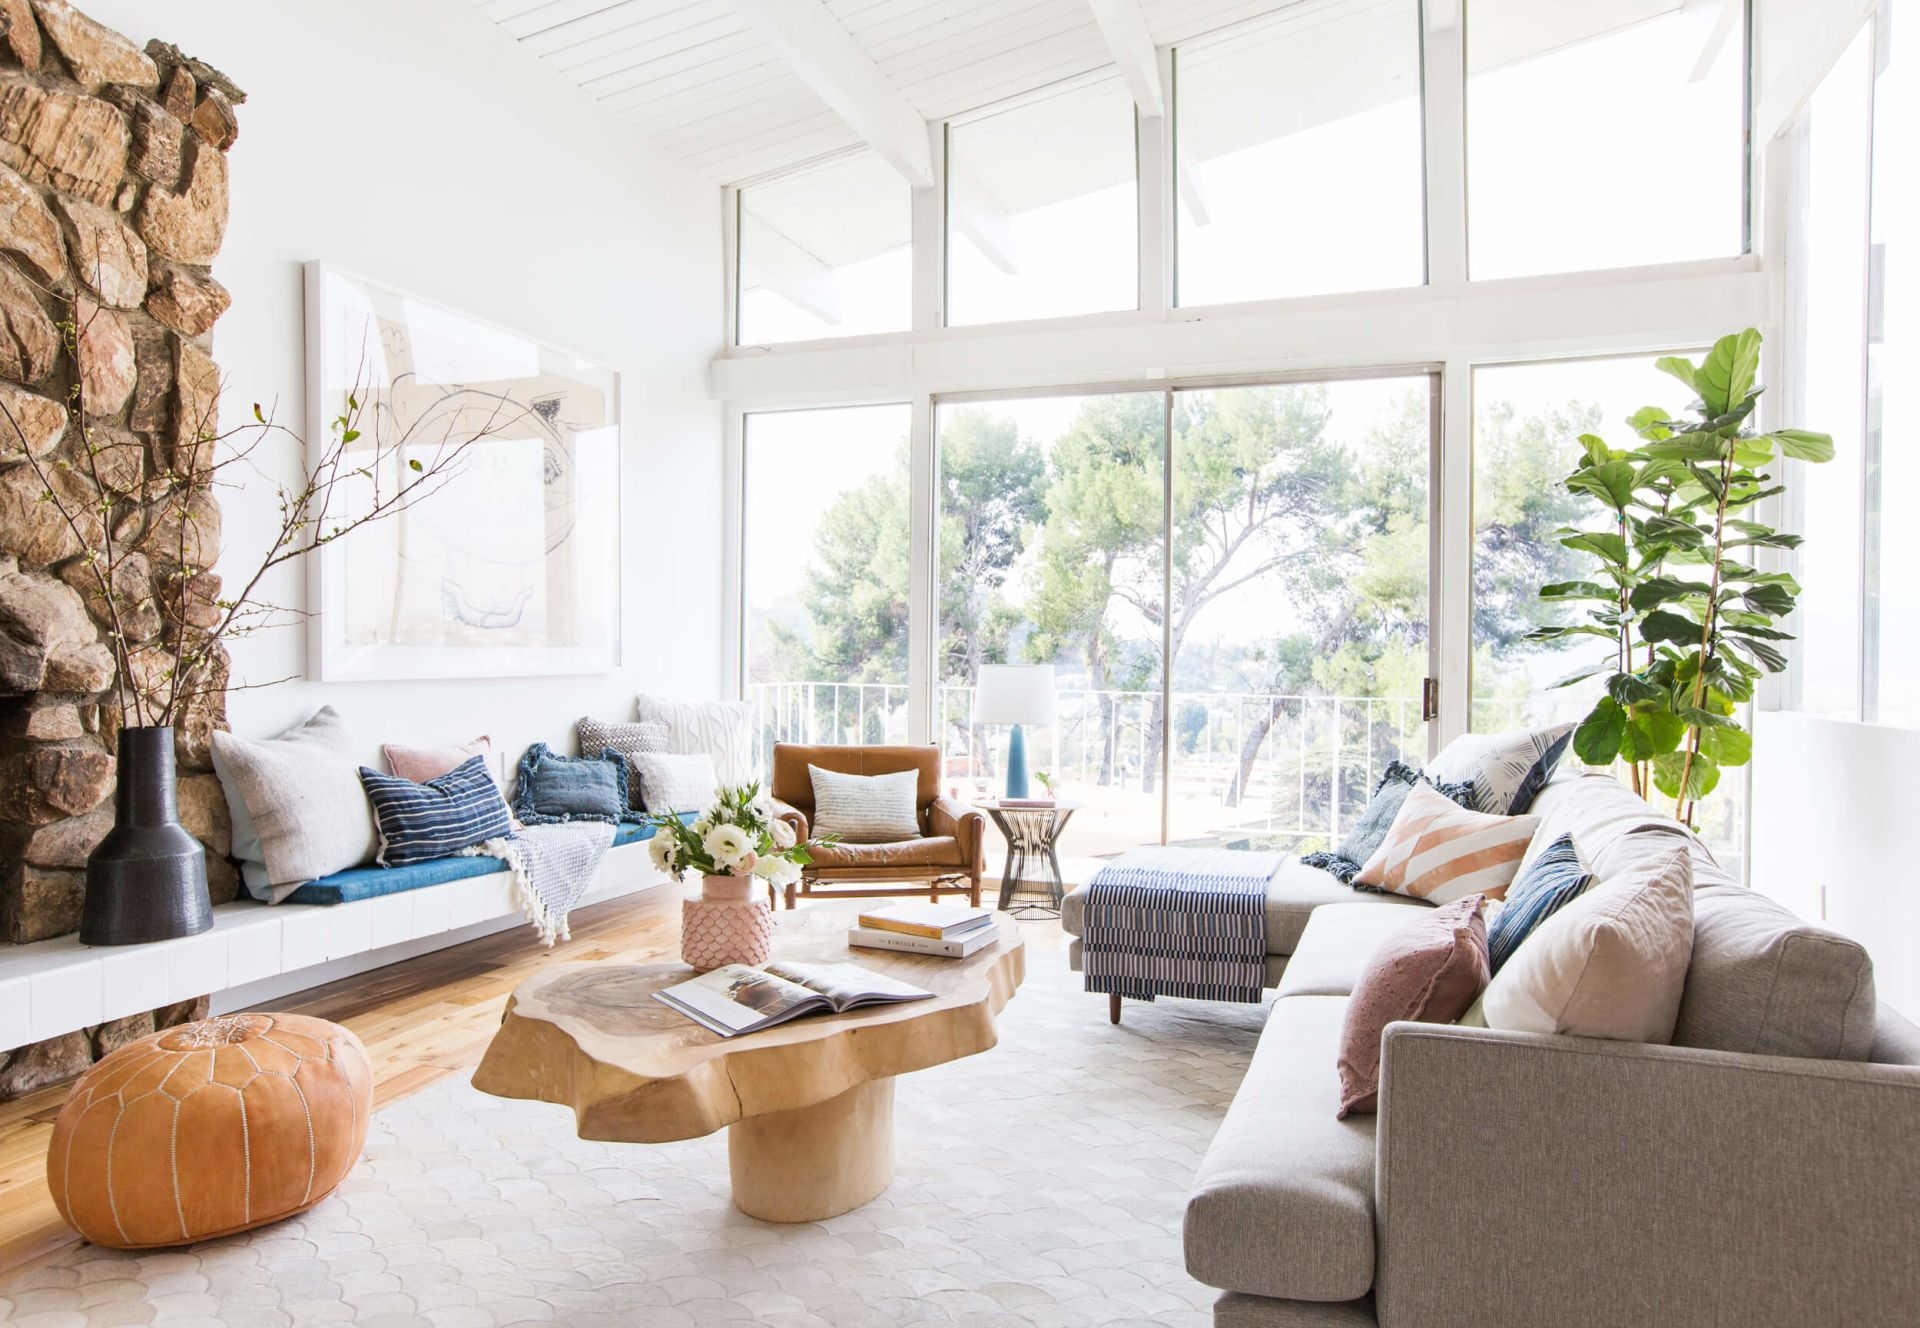 Why You Should Stage Your Home For Sale